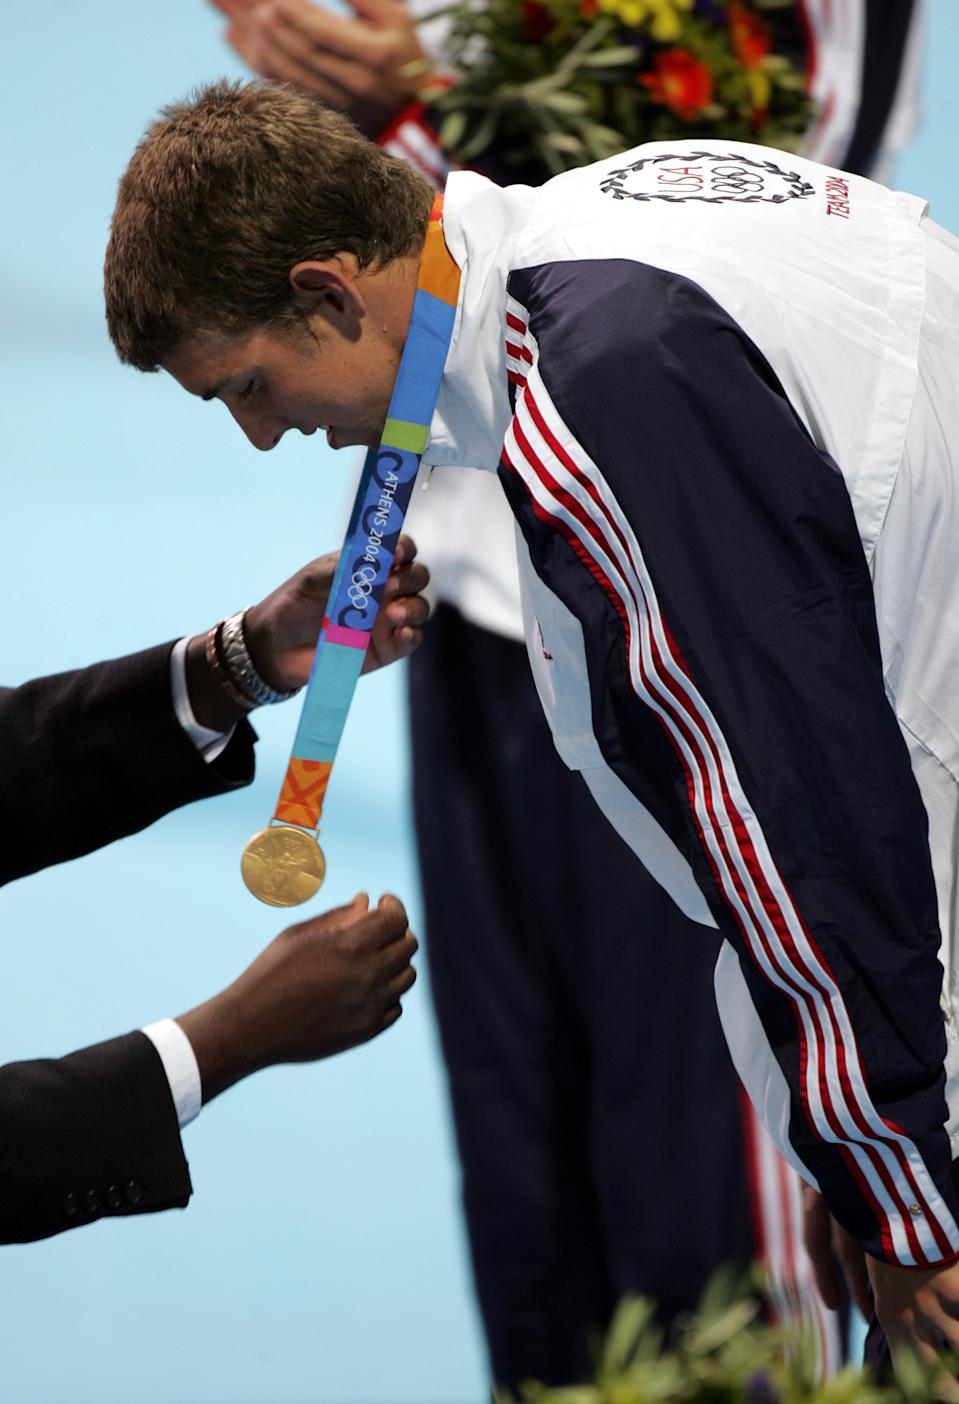 <b>Medal No. 7</b><br>Michael Phelps of the United States wins the Men's 100m Butterfly gold medal at the Olympic Aquatic Center in Athens Greece on August 20, 2004. Phelps set a new Olympic record time of 51.25 seconds.